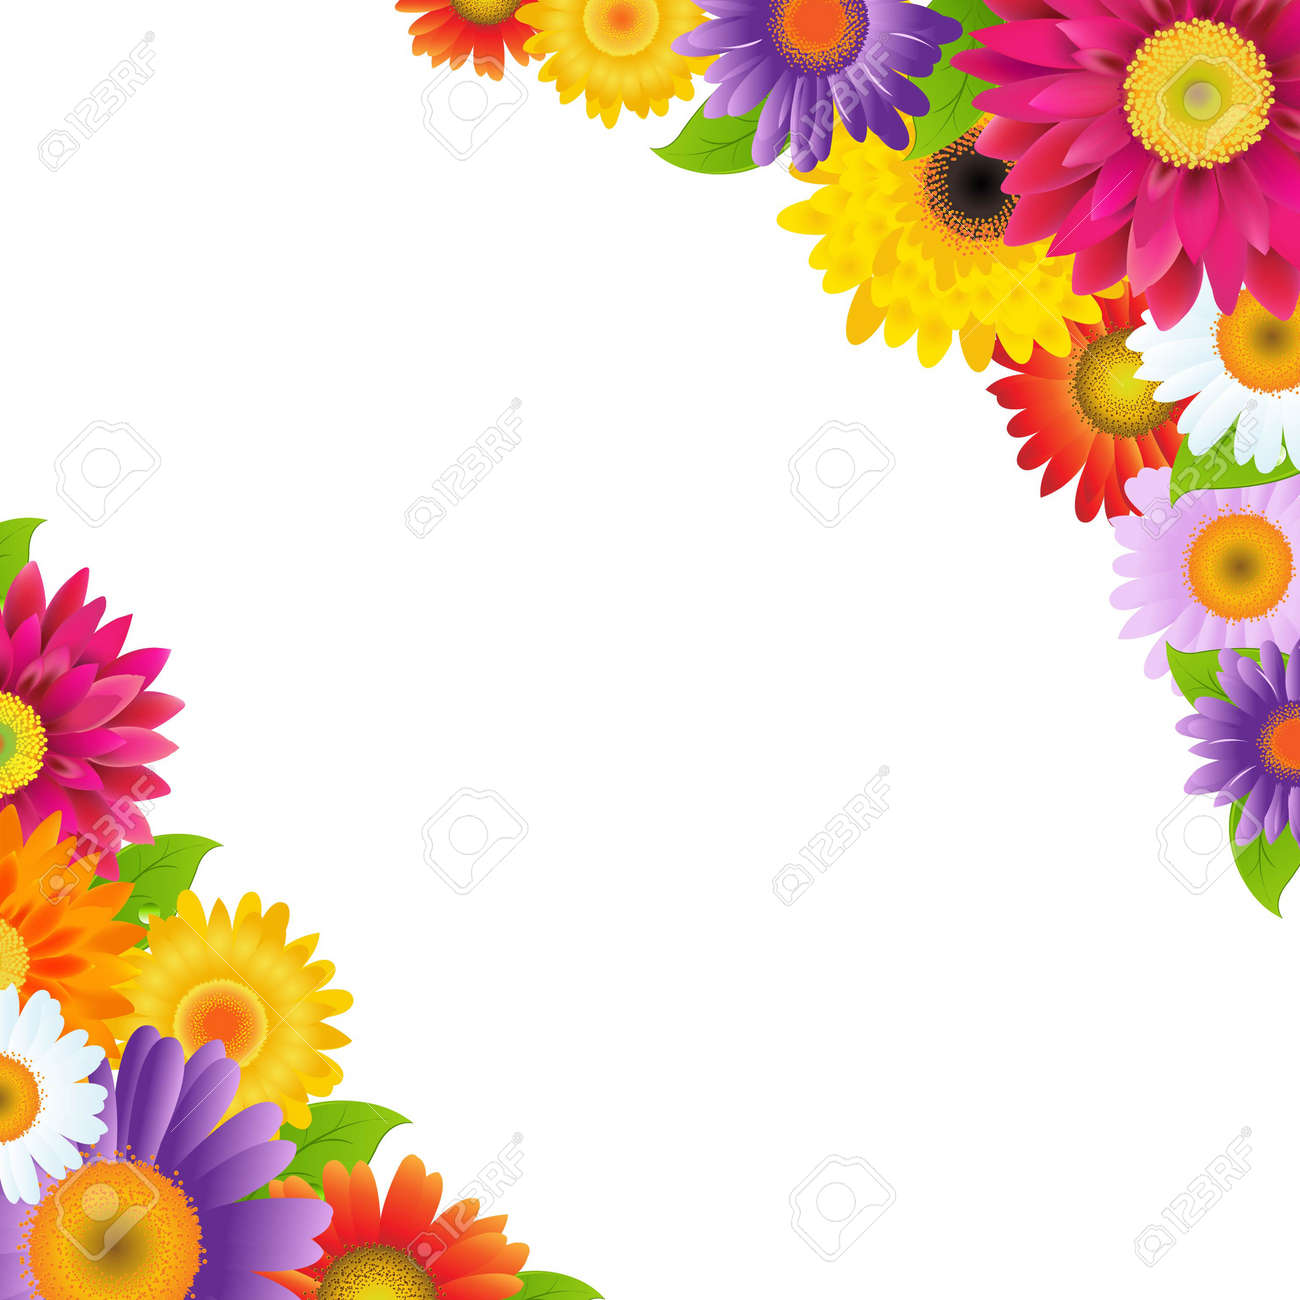 Colorful Gerbers Flowers Border, With Gradient Mesh, Vector Illustration - 26980561